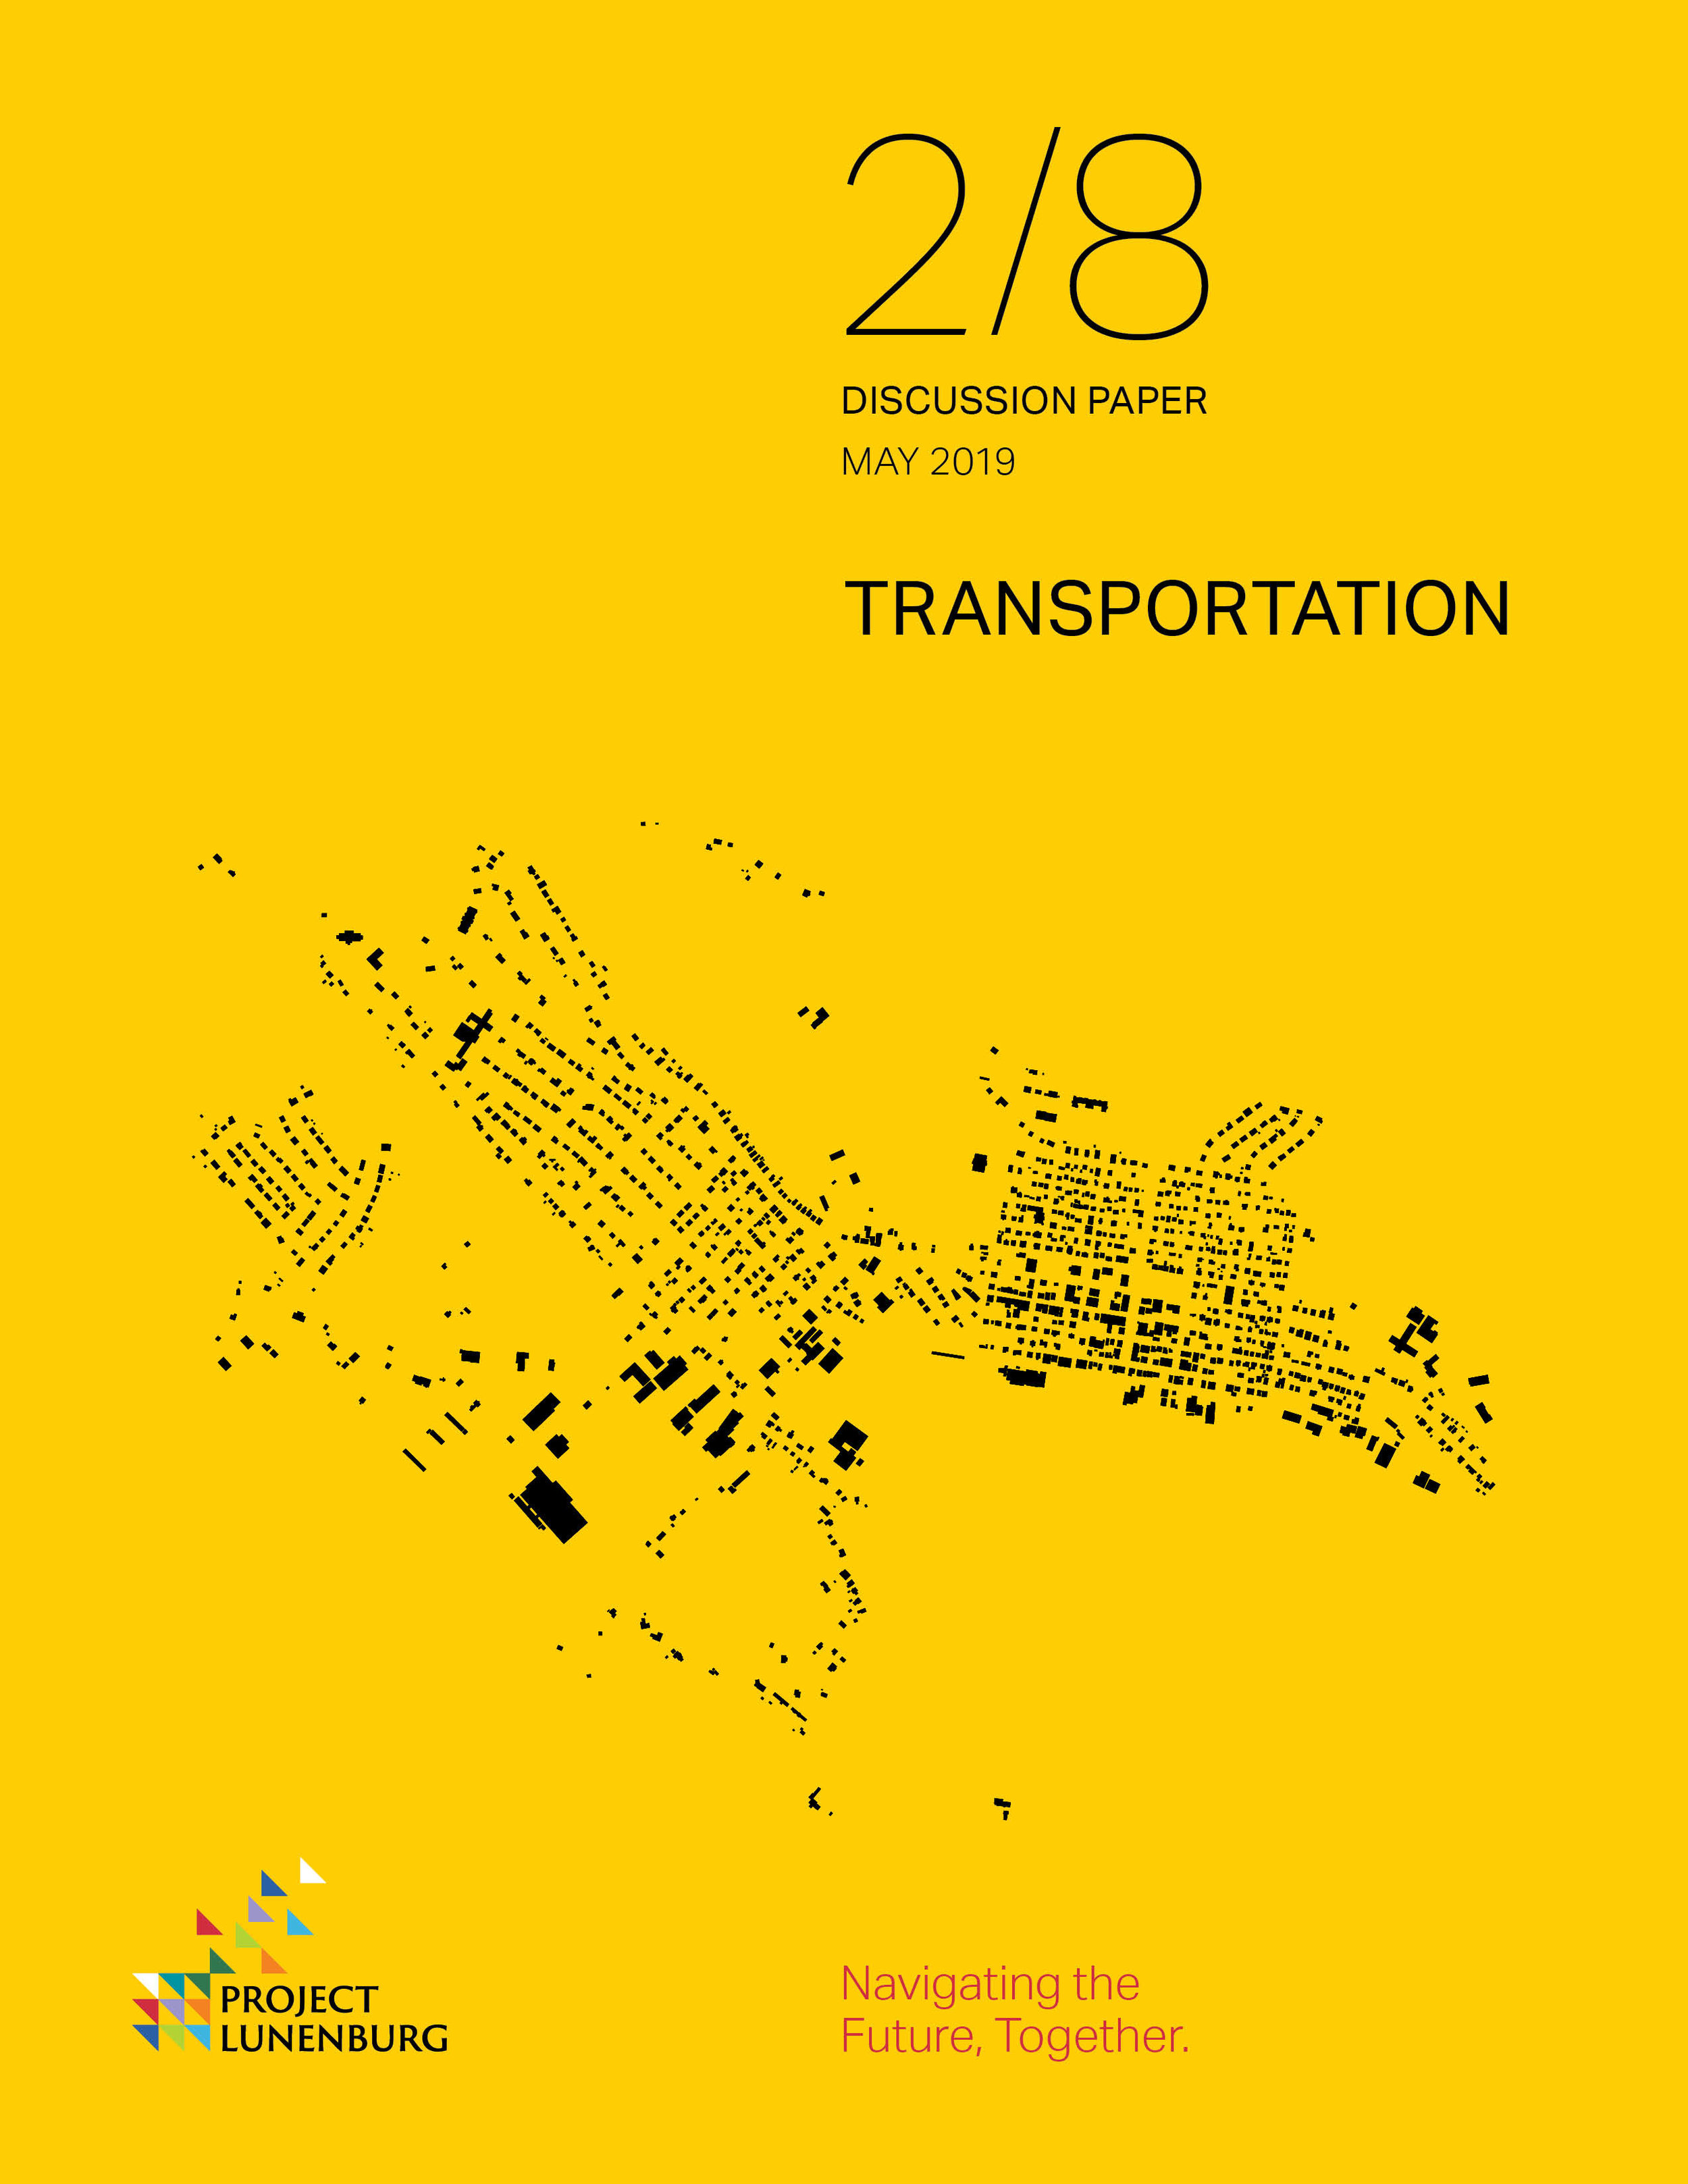 Discussion Paper 2/8: Transportation  This paper takes an overarching look at the topic of transportation. The discussion will identify opportunities, building upon past and current initiatives.